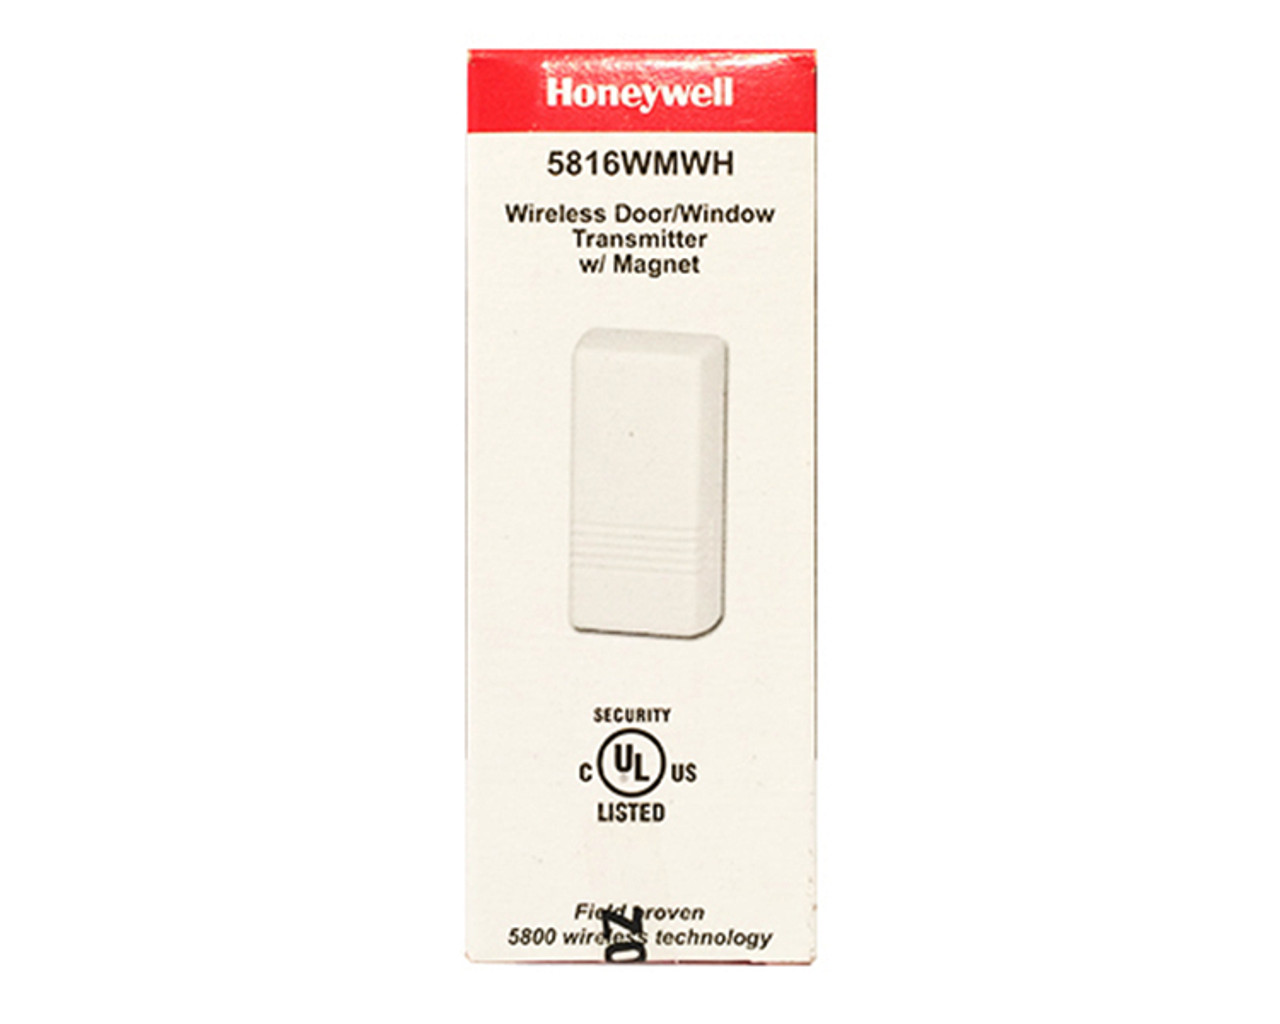 Honeywell 5816WMWH Wireless Door/Window Sensor w/ Magnet